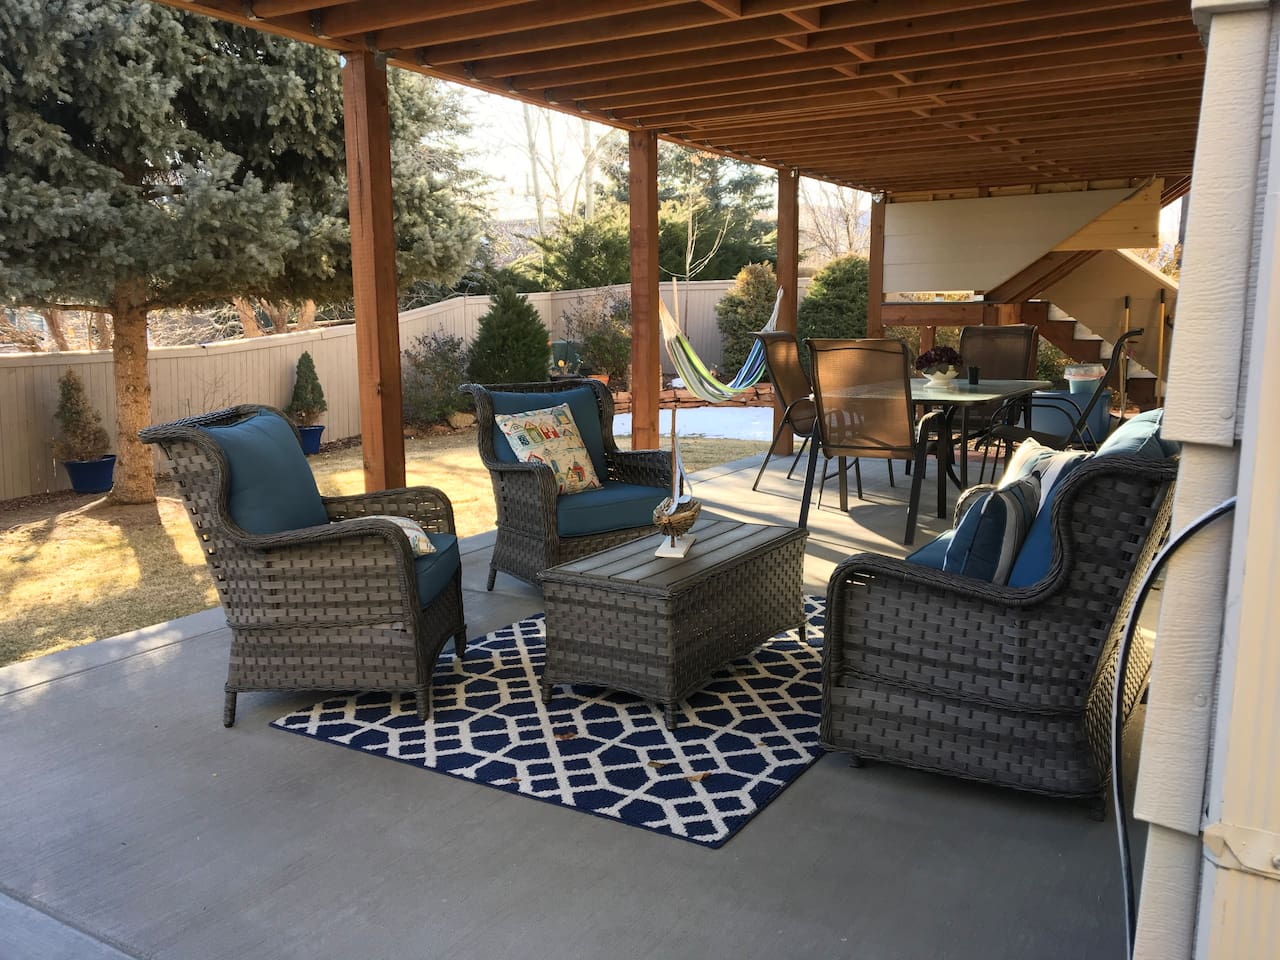 VIEW OF BACK PATIO